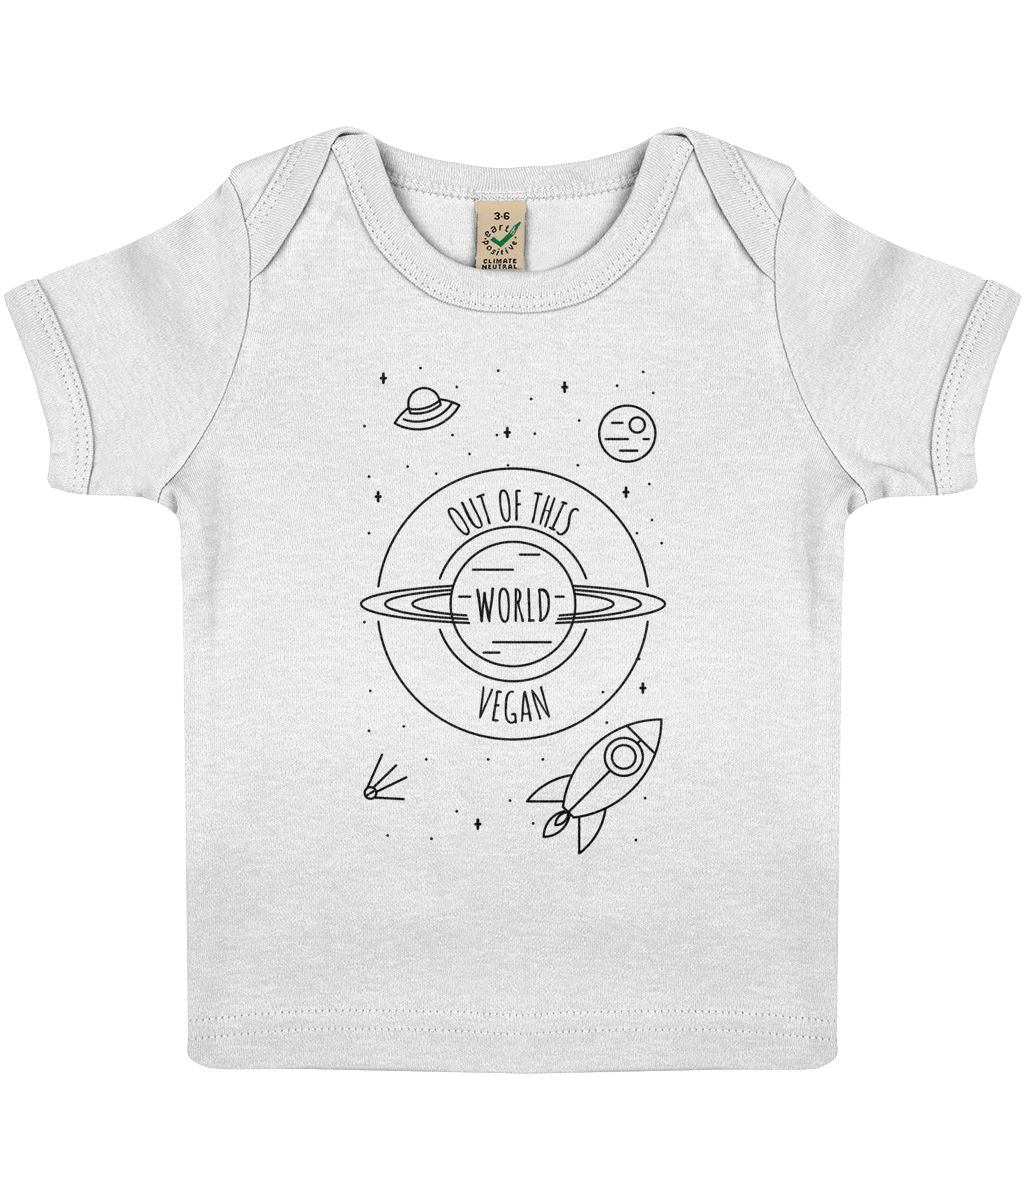 """Out Of This World Vegan"" Baby Lap T-Shirt Clothing Vegan Original 3-6 months White"